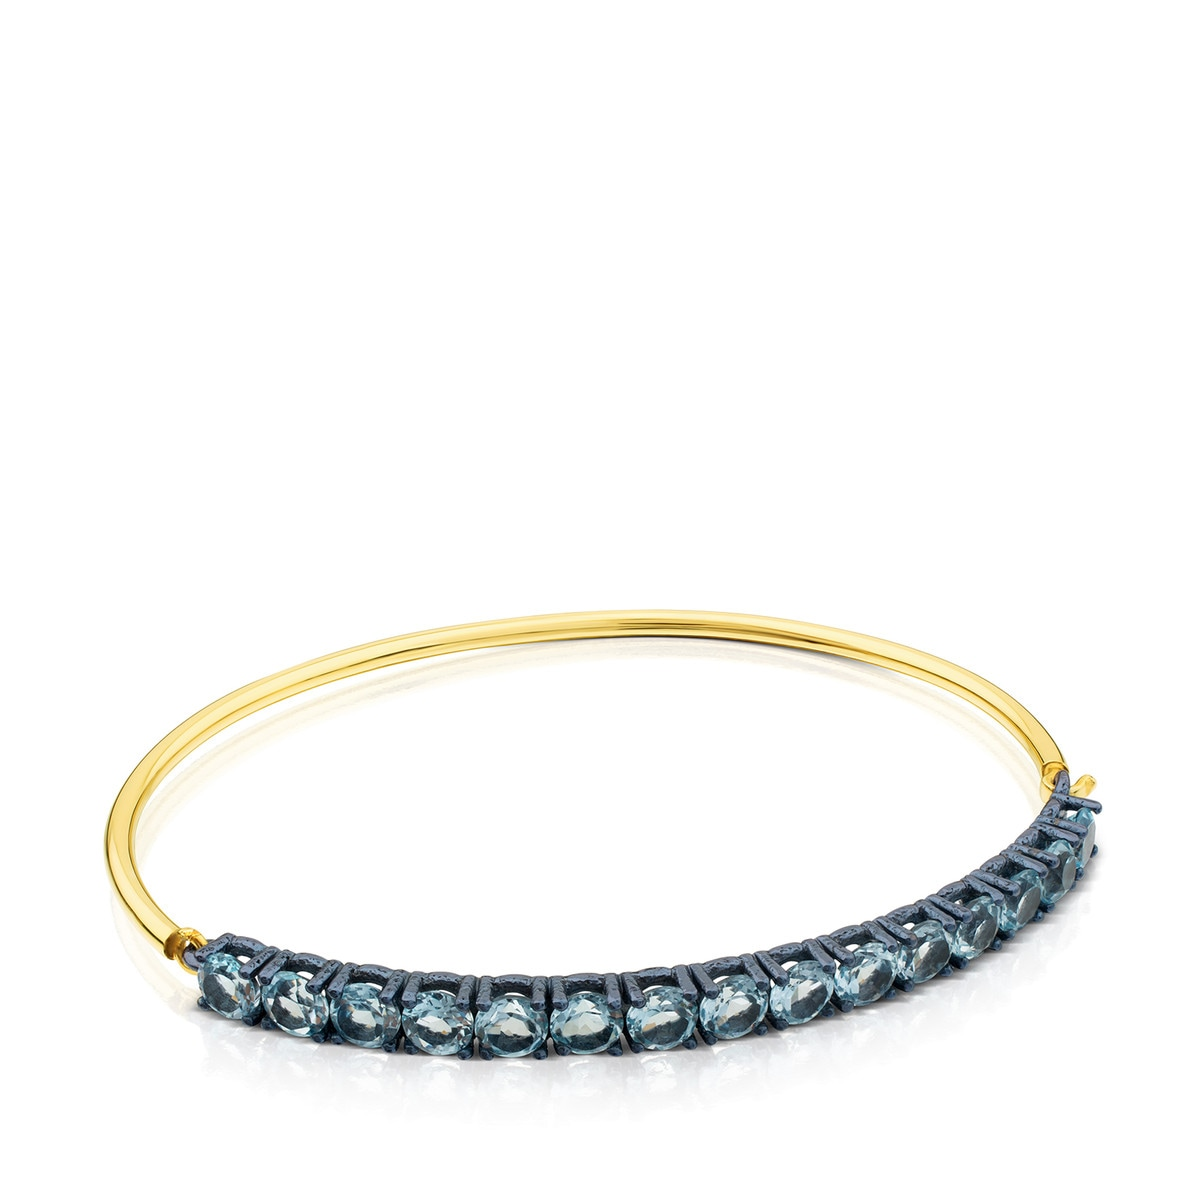 ATELIER Titanium Bangle with Gold and Topazes